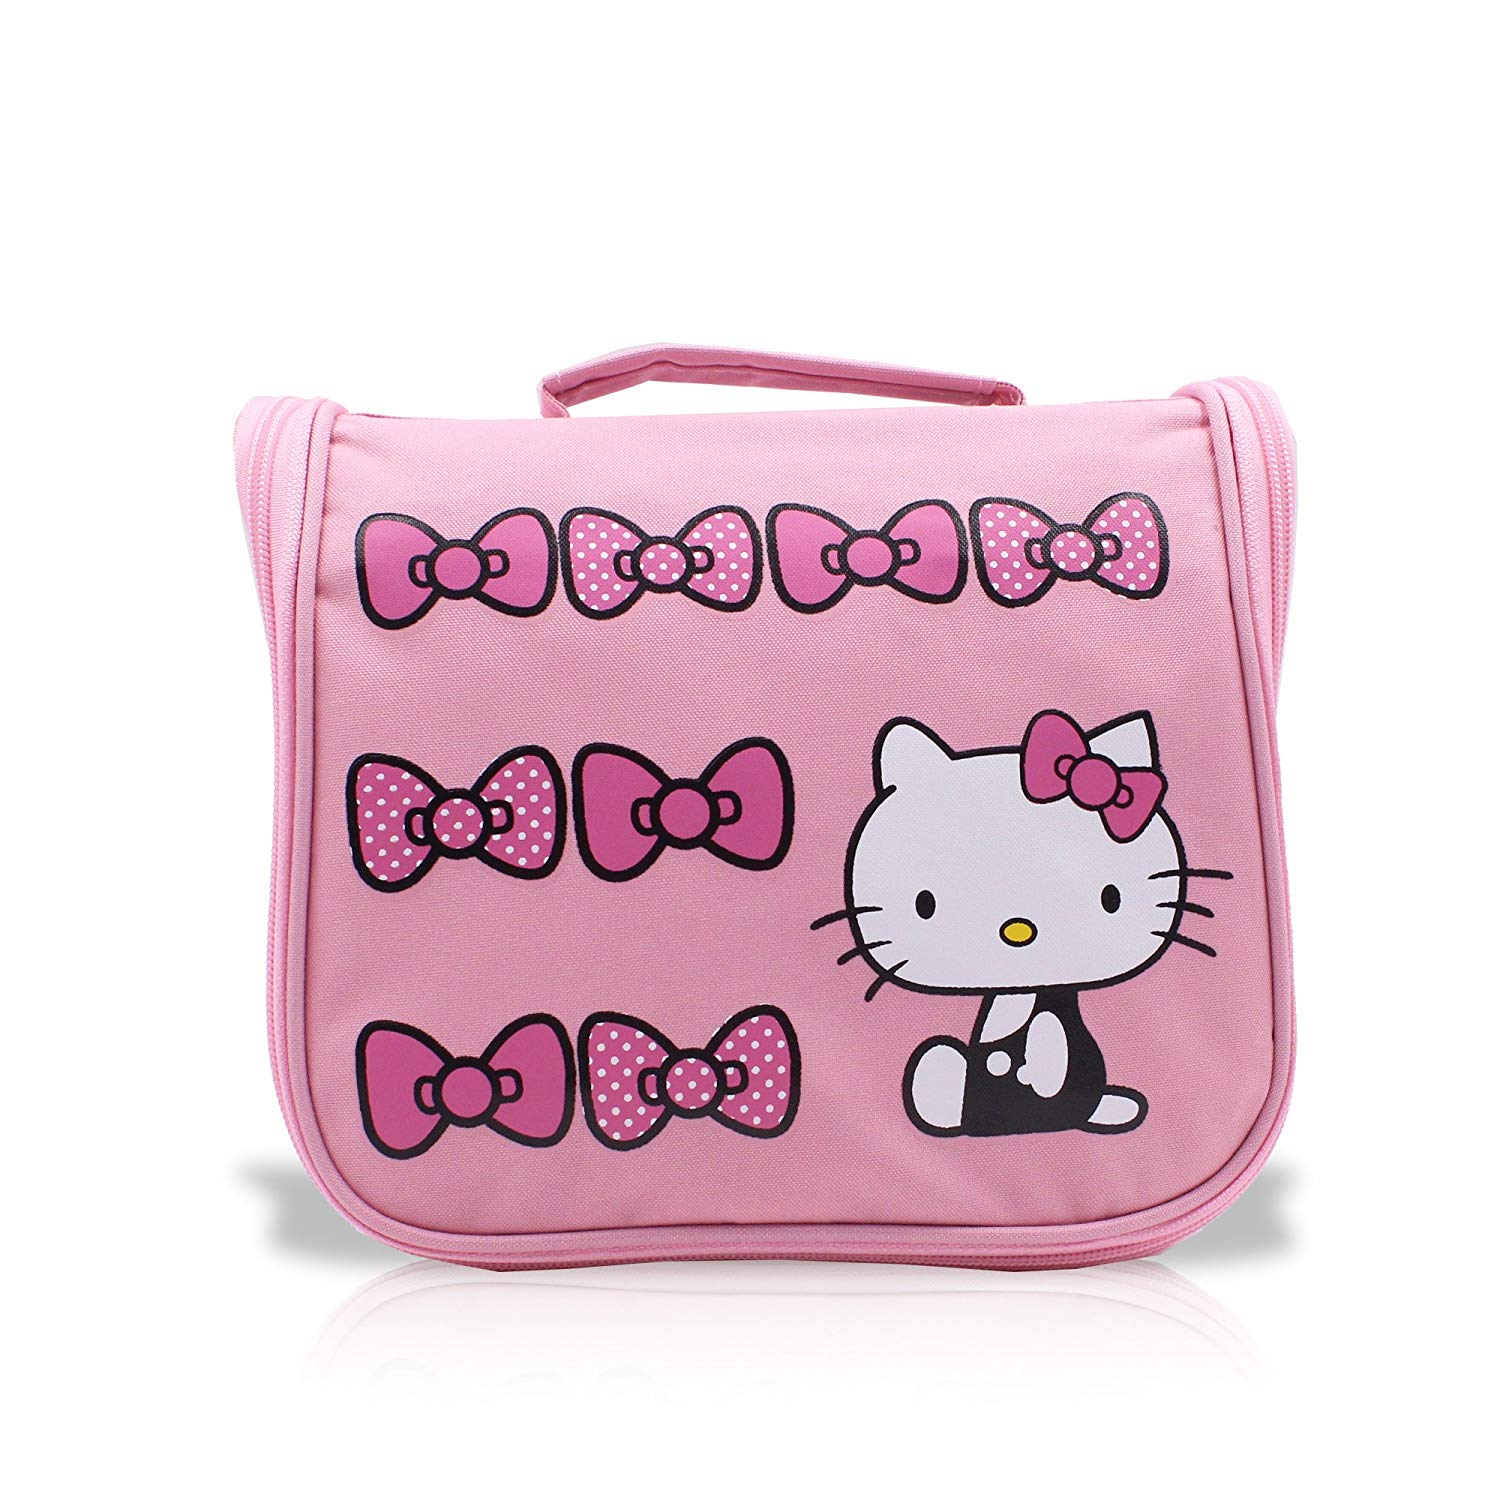 d78f00035b1f LOVEKITTY® 3D Fully Blinged Rhinestones Black Face Pink Bow Foldable Hello  Kitty Inspired Purse Holder